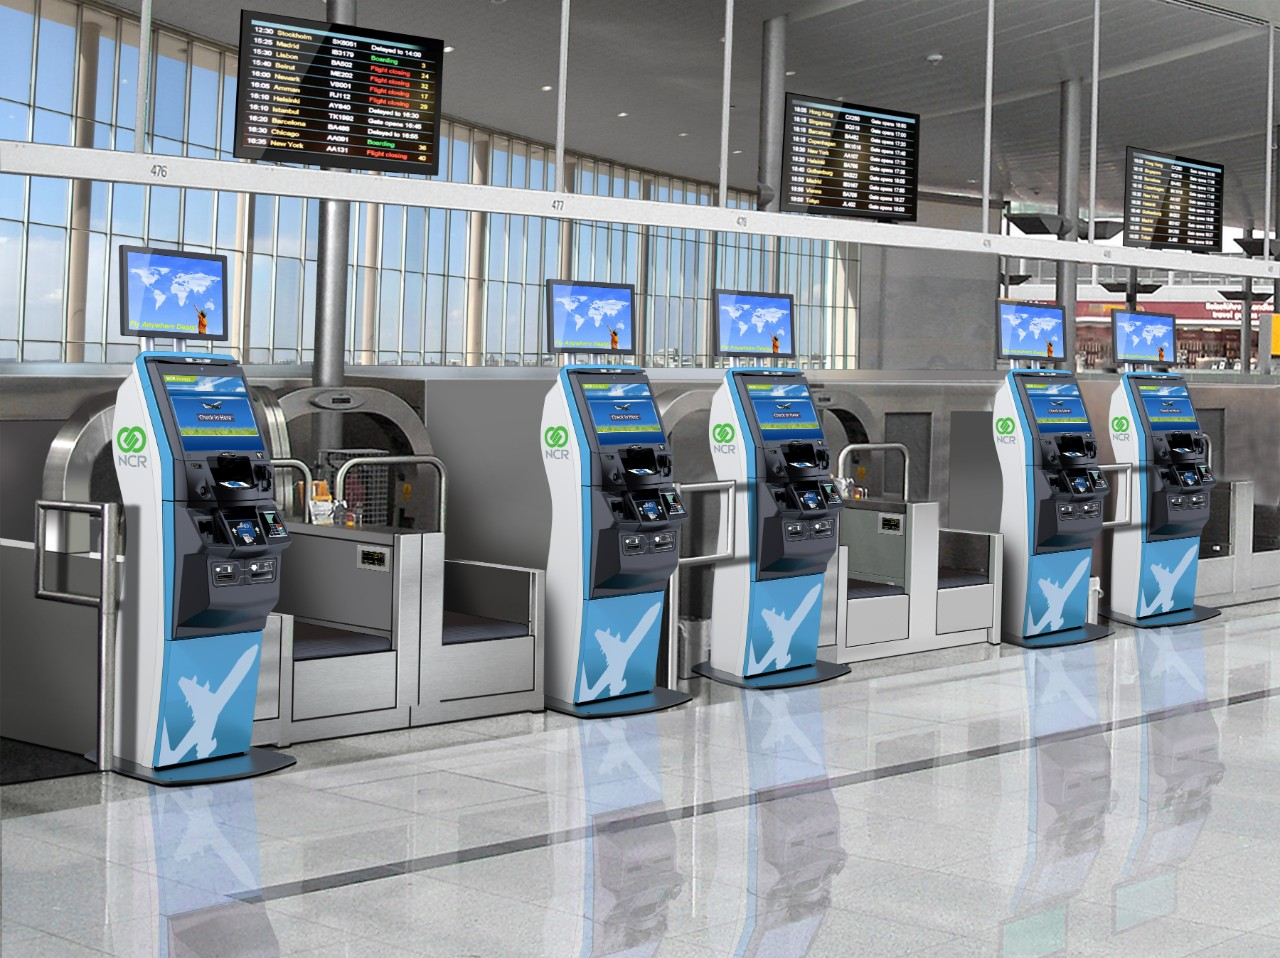 BAGAGGE DROP LOBBY WITH ADDED SERVICES KIOSKS